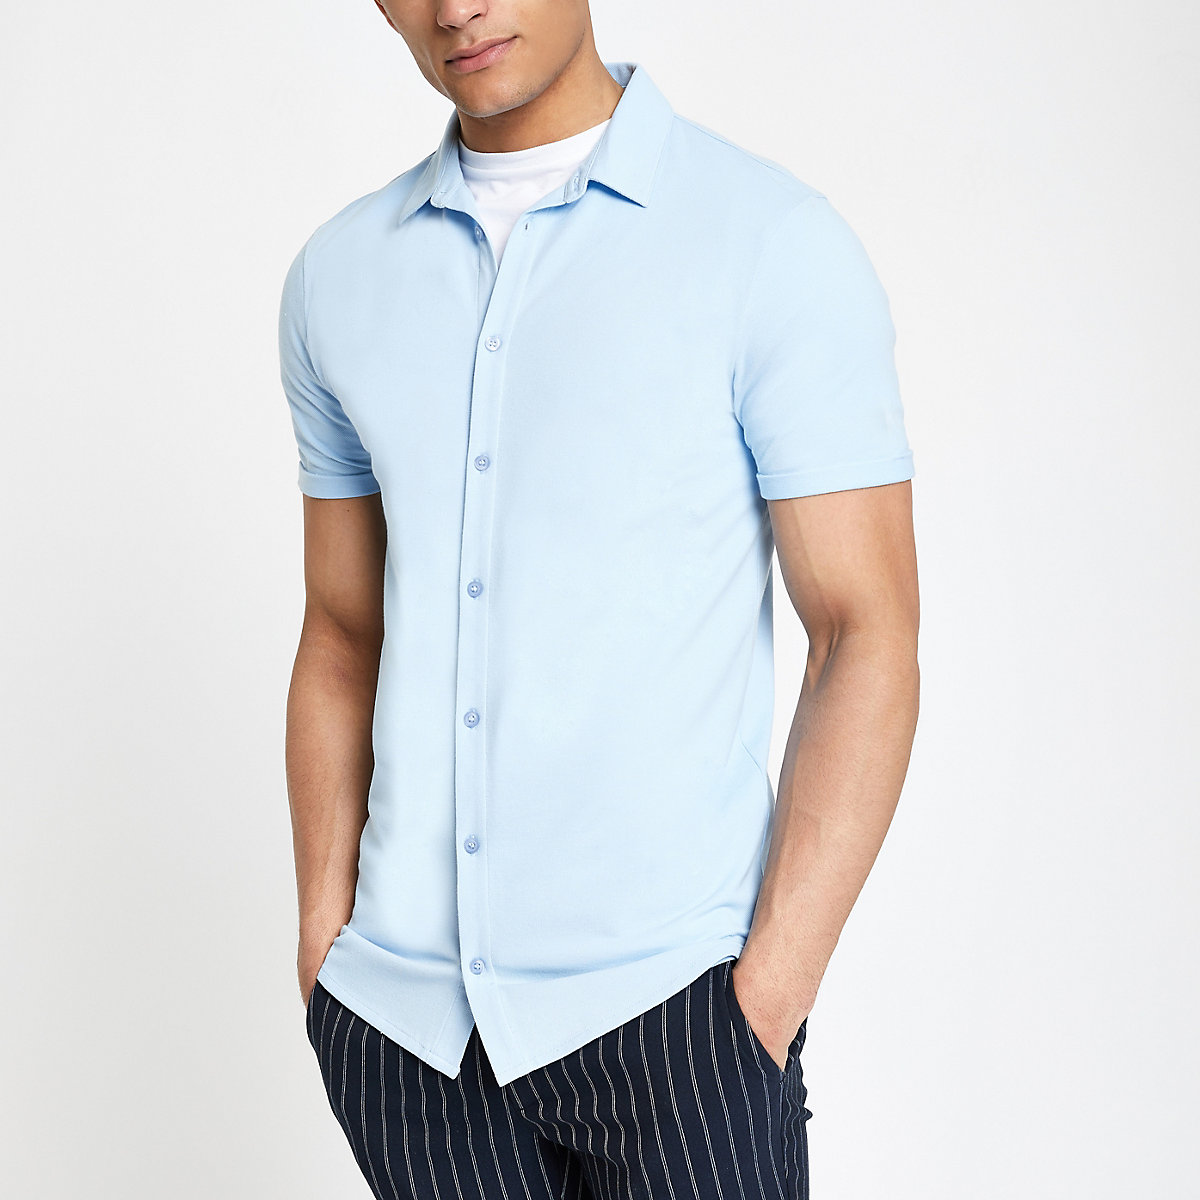 Blue muscle fit button down shirt